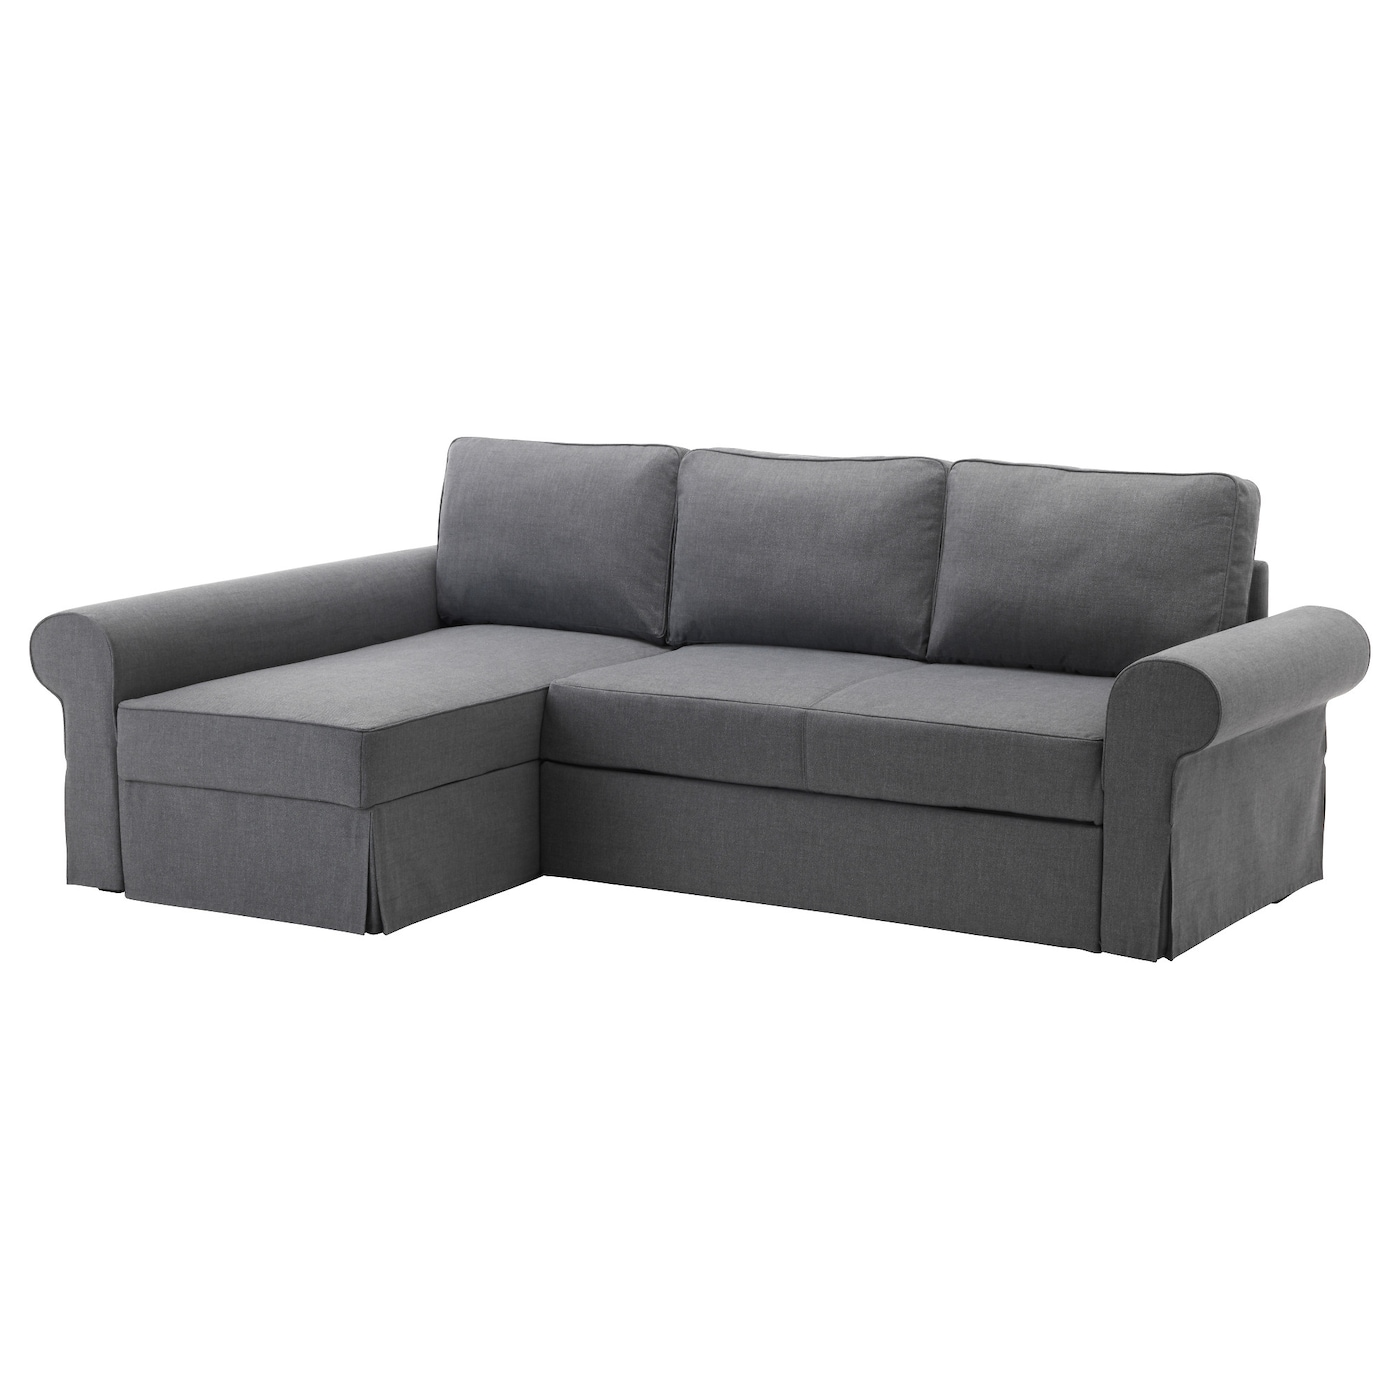 BACKABRO Sofa bed with chaise longue Nordvalla dark grey IKEA